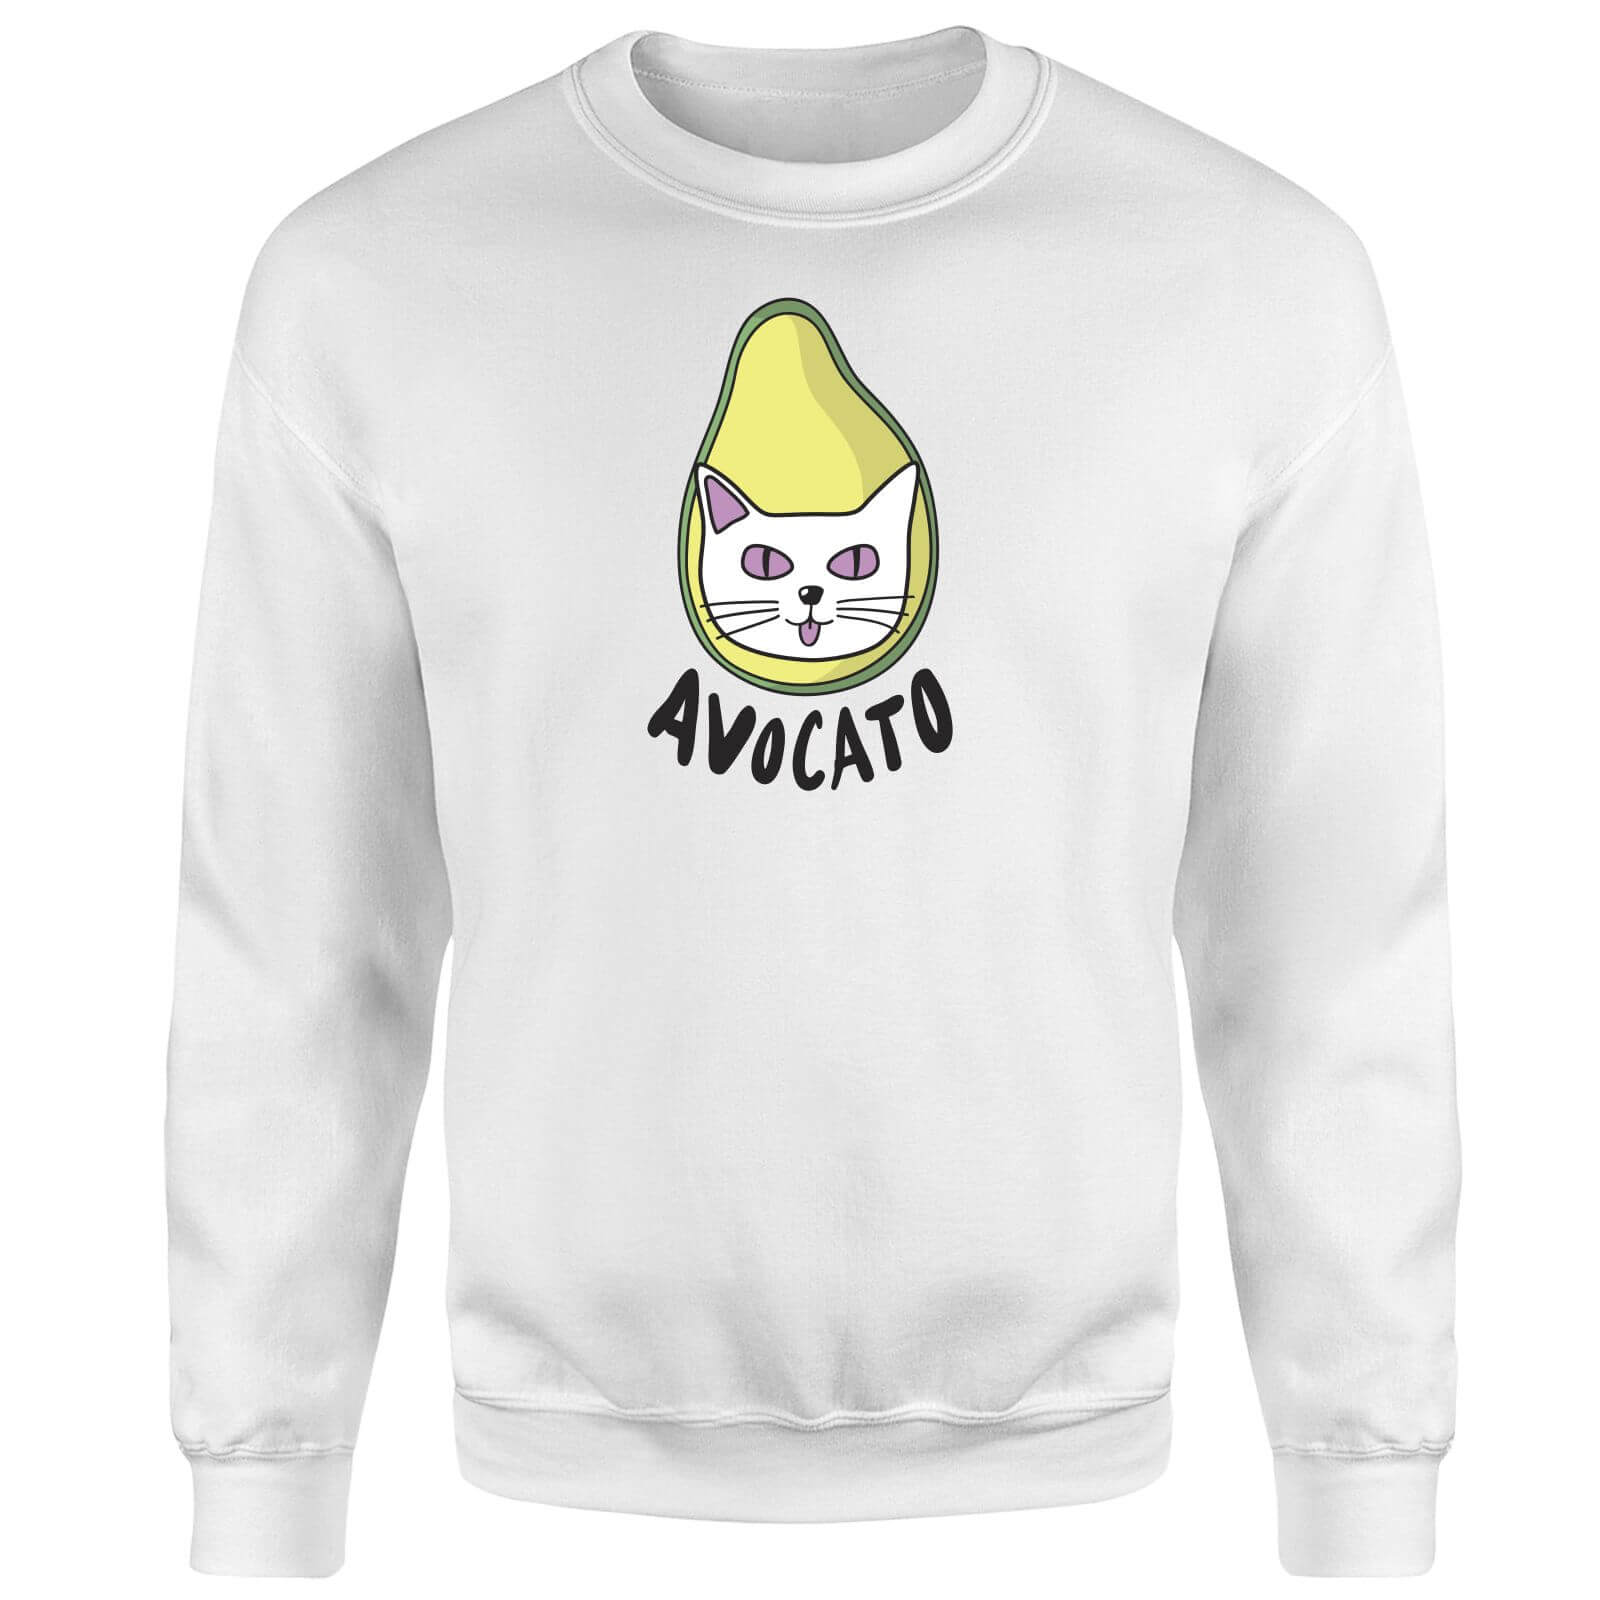 Avocato Sweatshirt - White